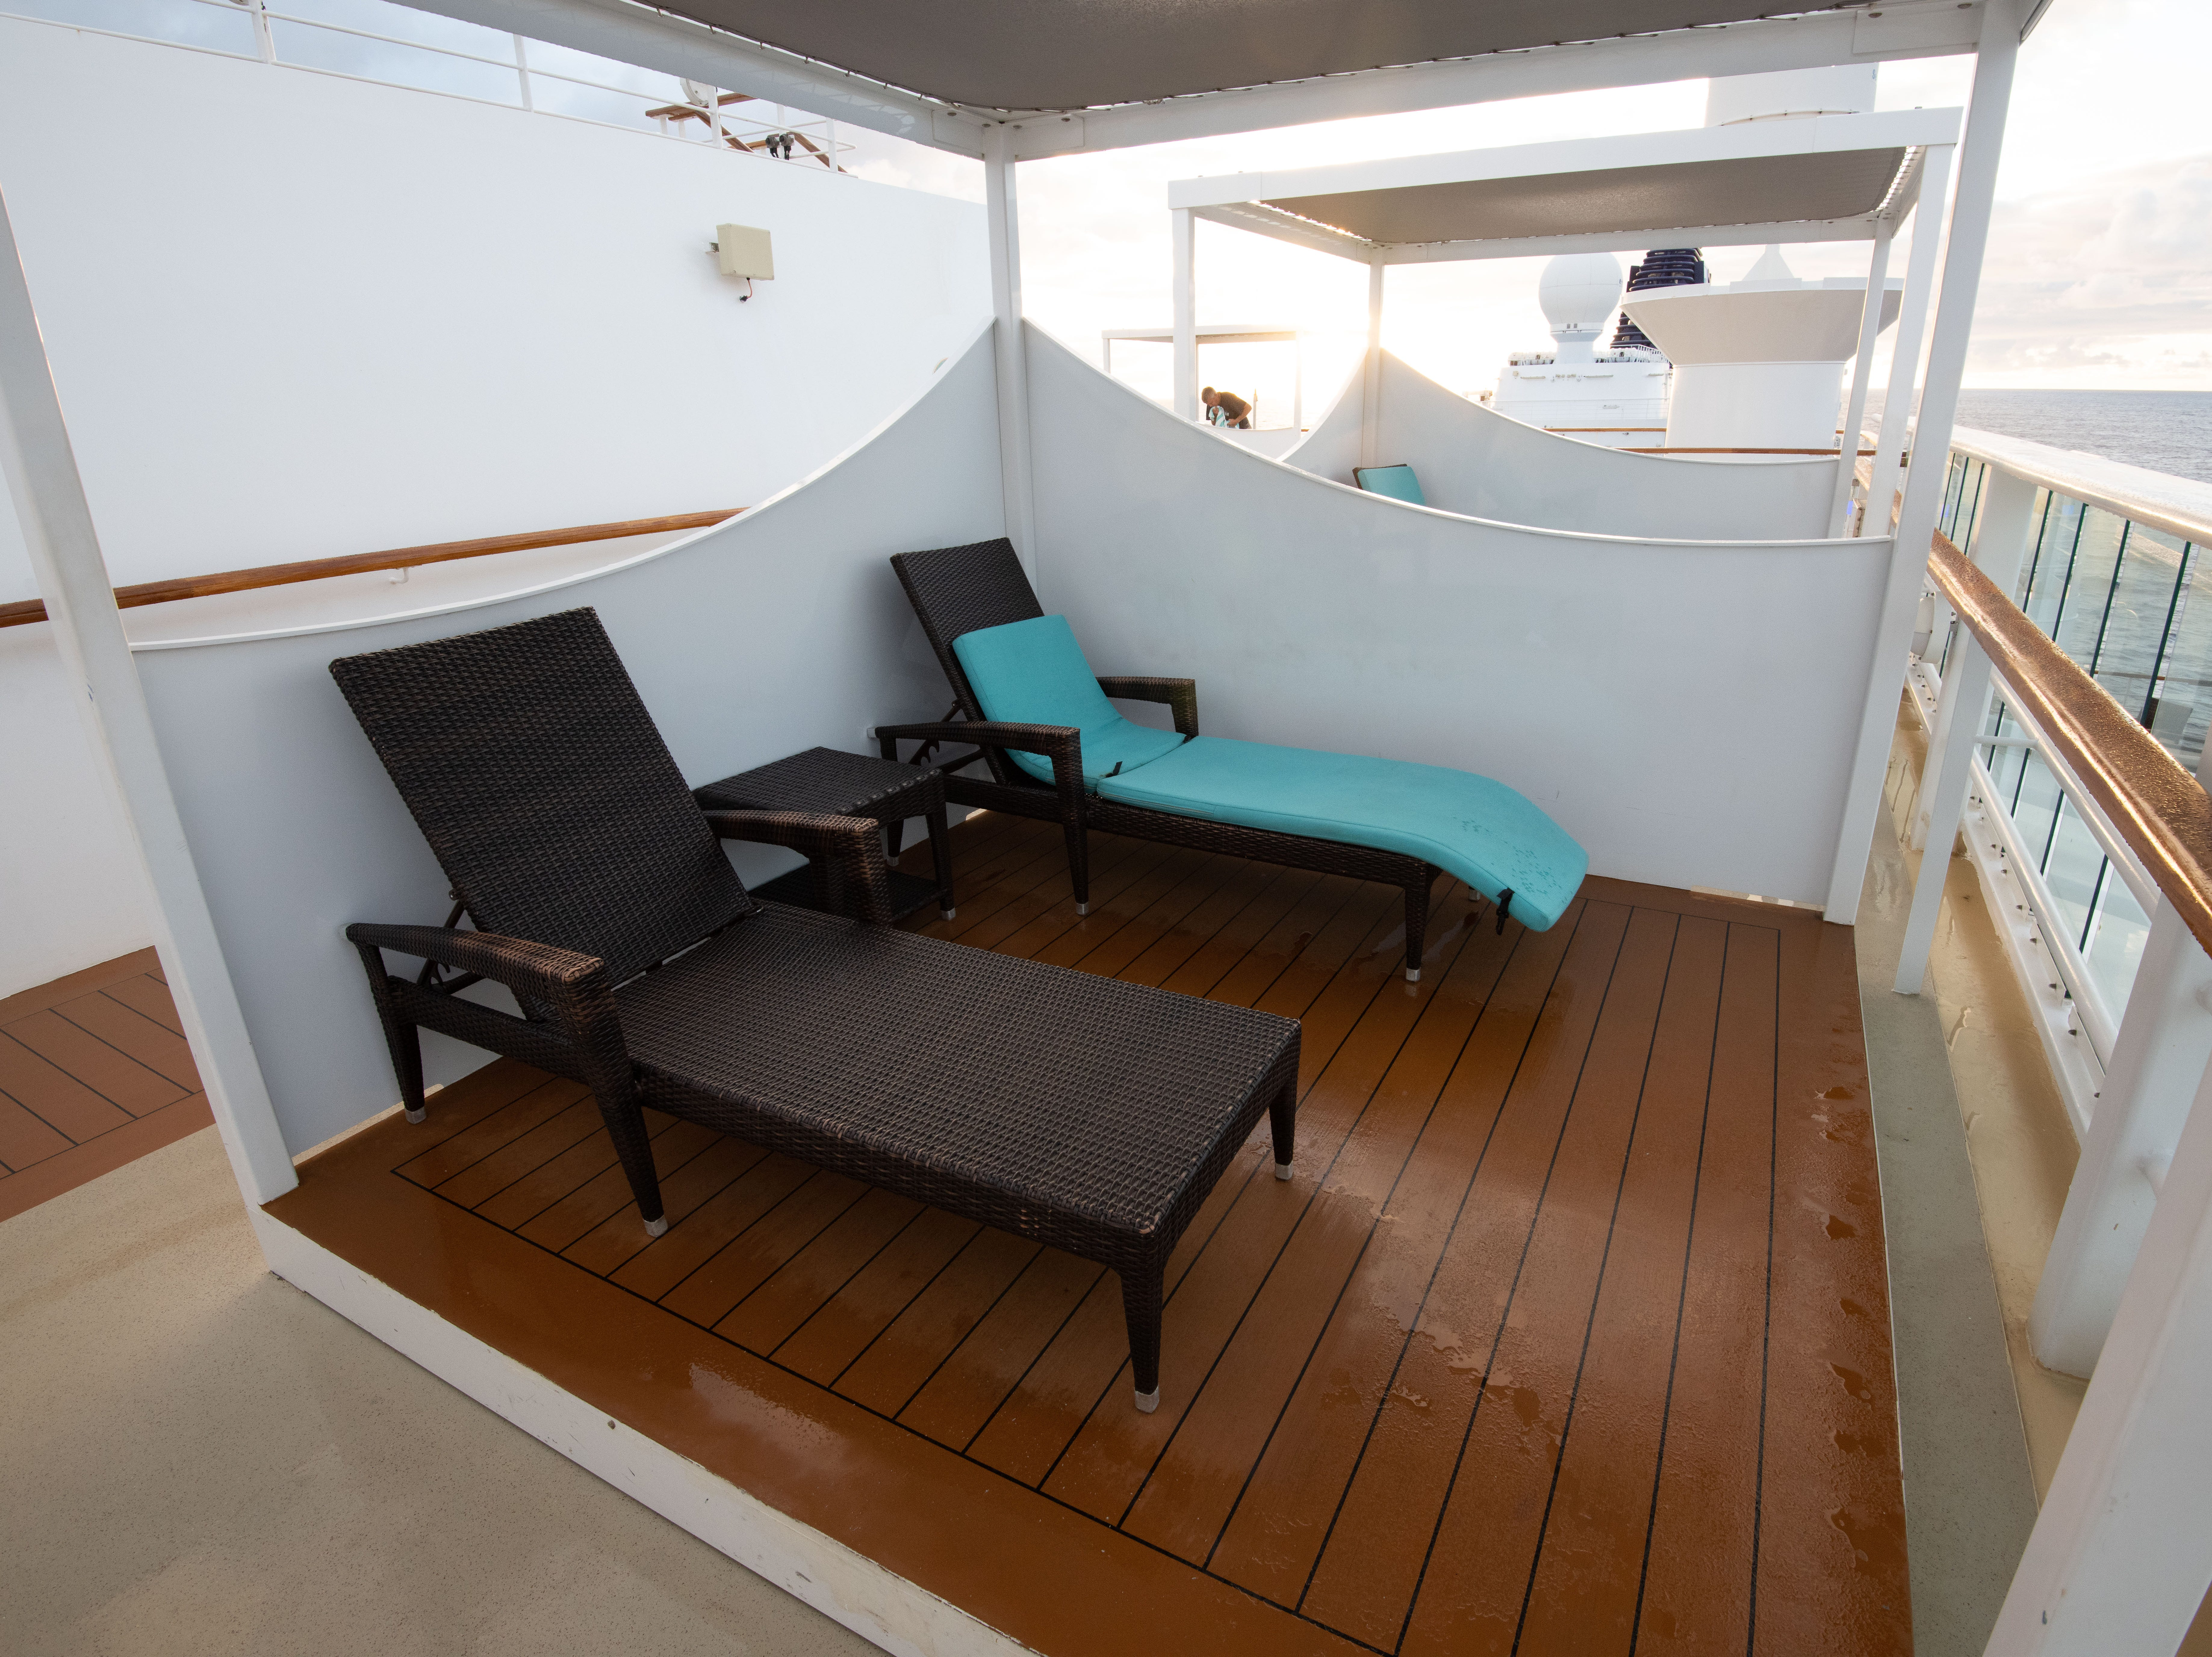 Deck 14 features a number of private, covered cabana areas with lounge seating. Unlike on many other ships across the cruise industry, the cabanas are available to passengers at no extra charge on a first-come, first-serve basis.